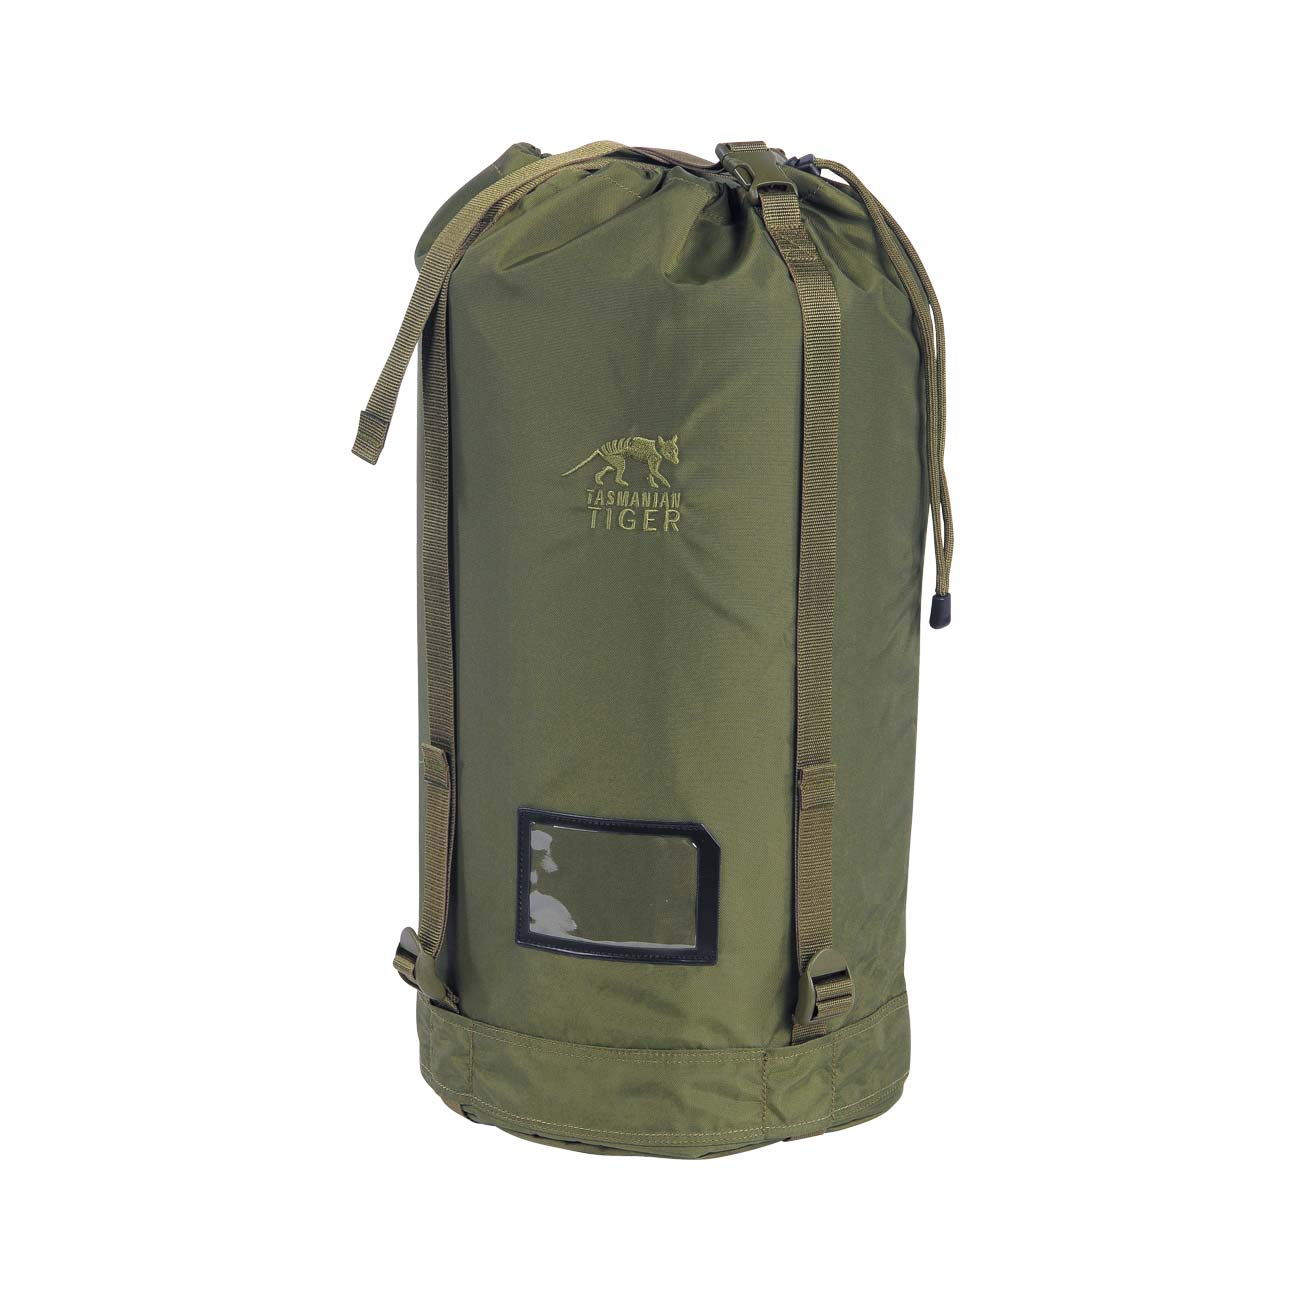 Tasmanian Tiger Kompressionssack Compression Bag M 20 Liter oliv 0